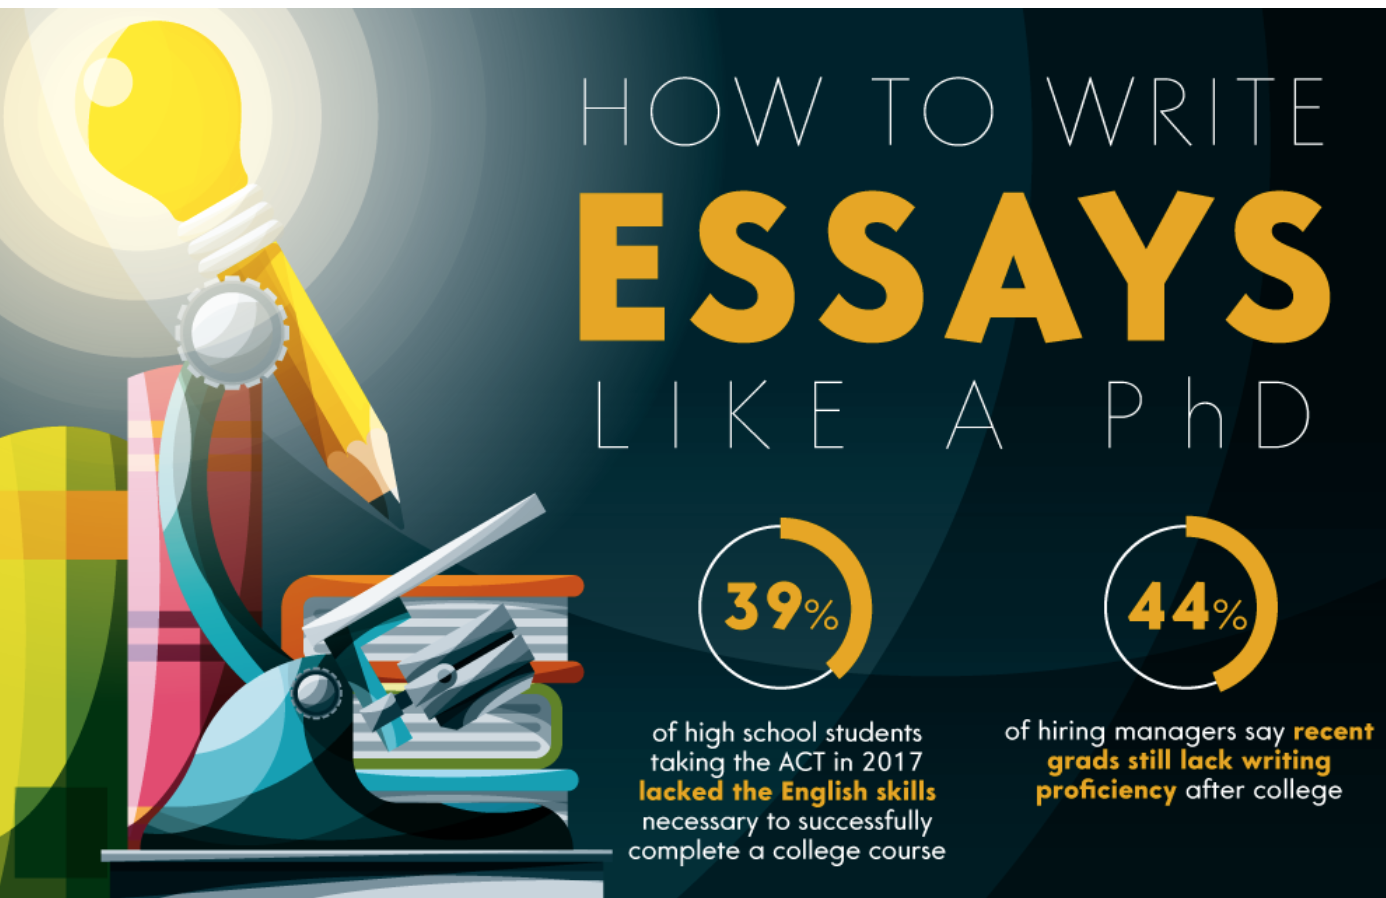 /how-to-write-the-perfect-essay-70698a3830af feature image